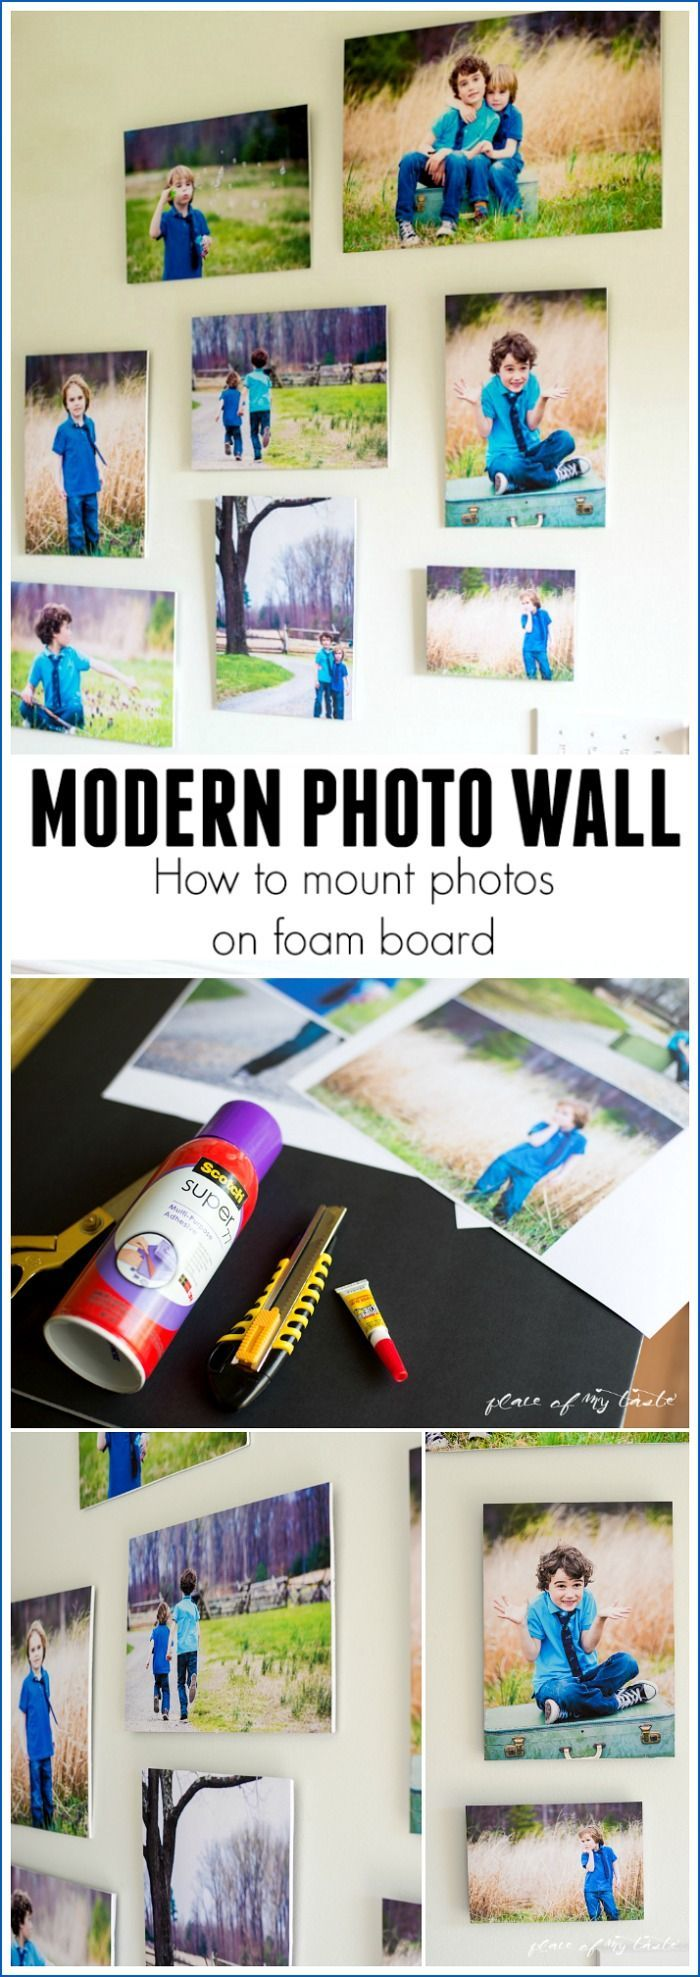 HOW TO MOUNT PHOTOS ON FOAM BOARD